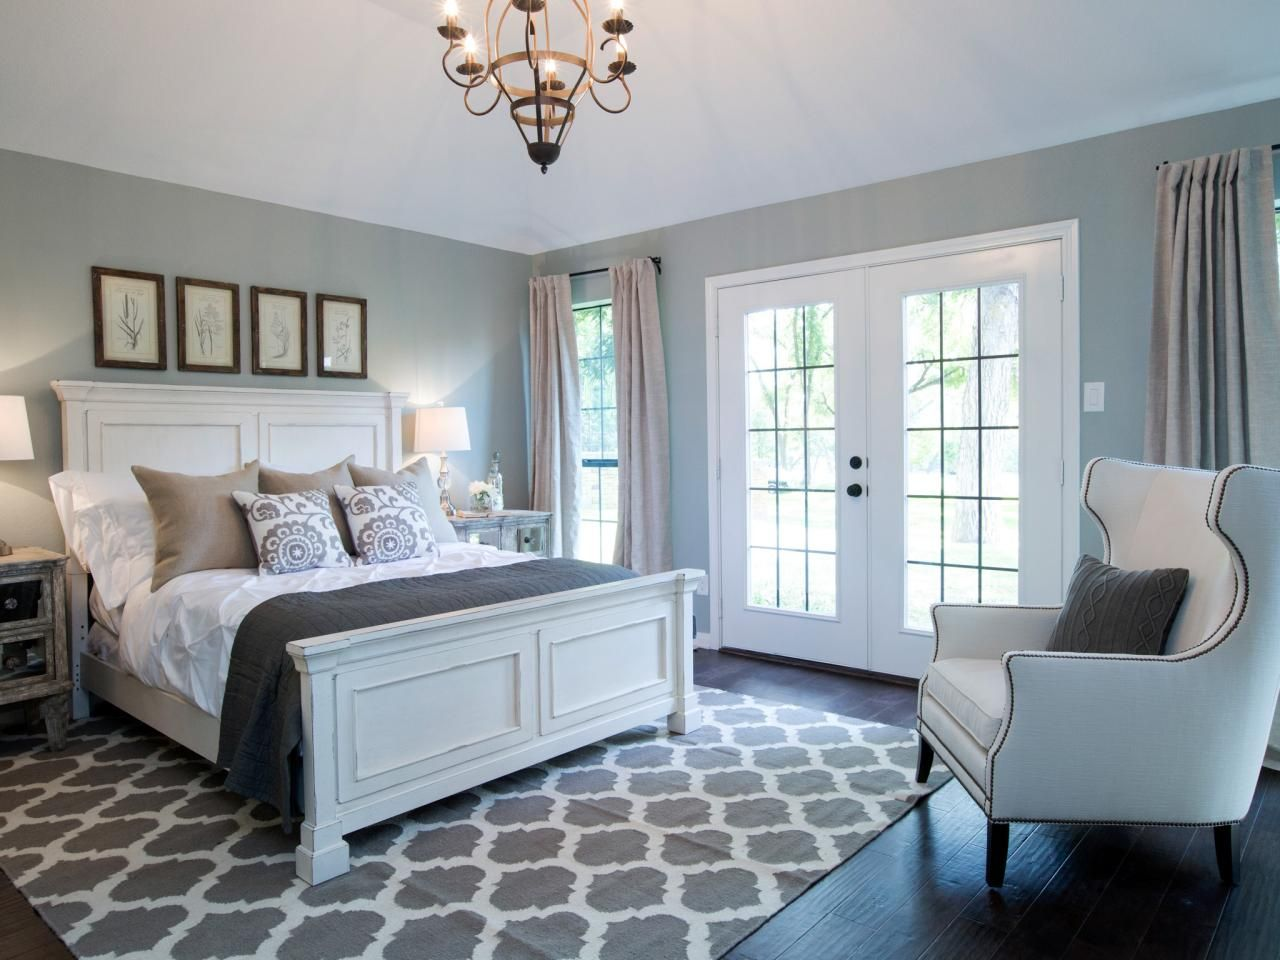 Hgtv Master Bedroom Decorating Ideas Best 25 Master Bedrooms Ideas On Pinterest  Dream Master Bedroom .